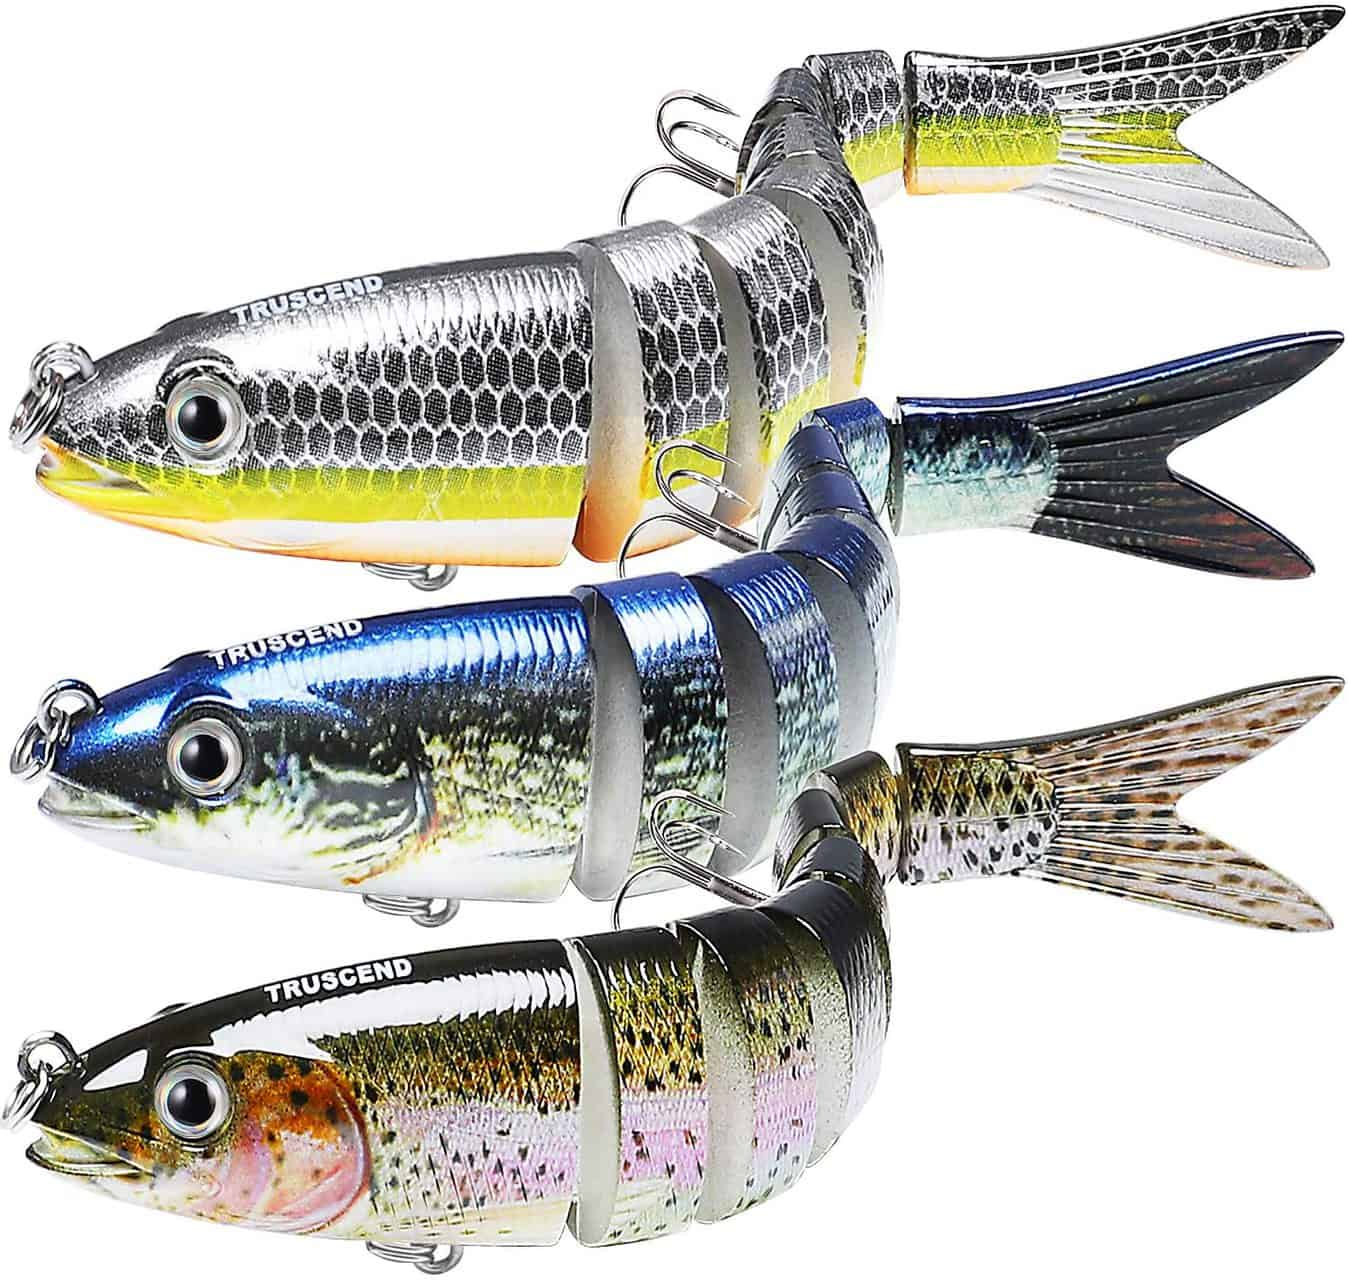 Bass Fishing Lure by Truscend